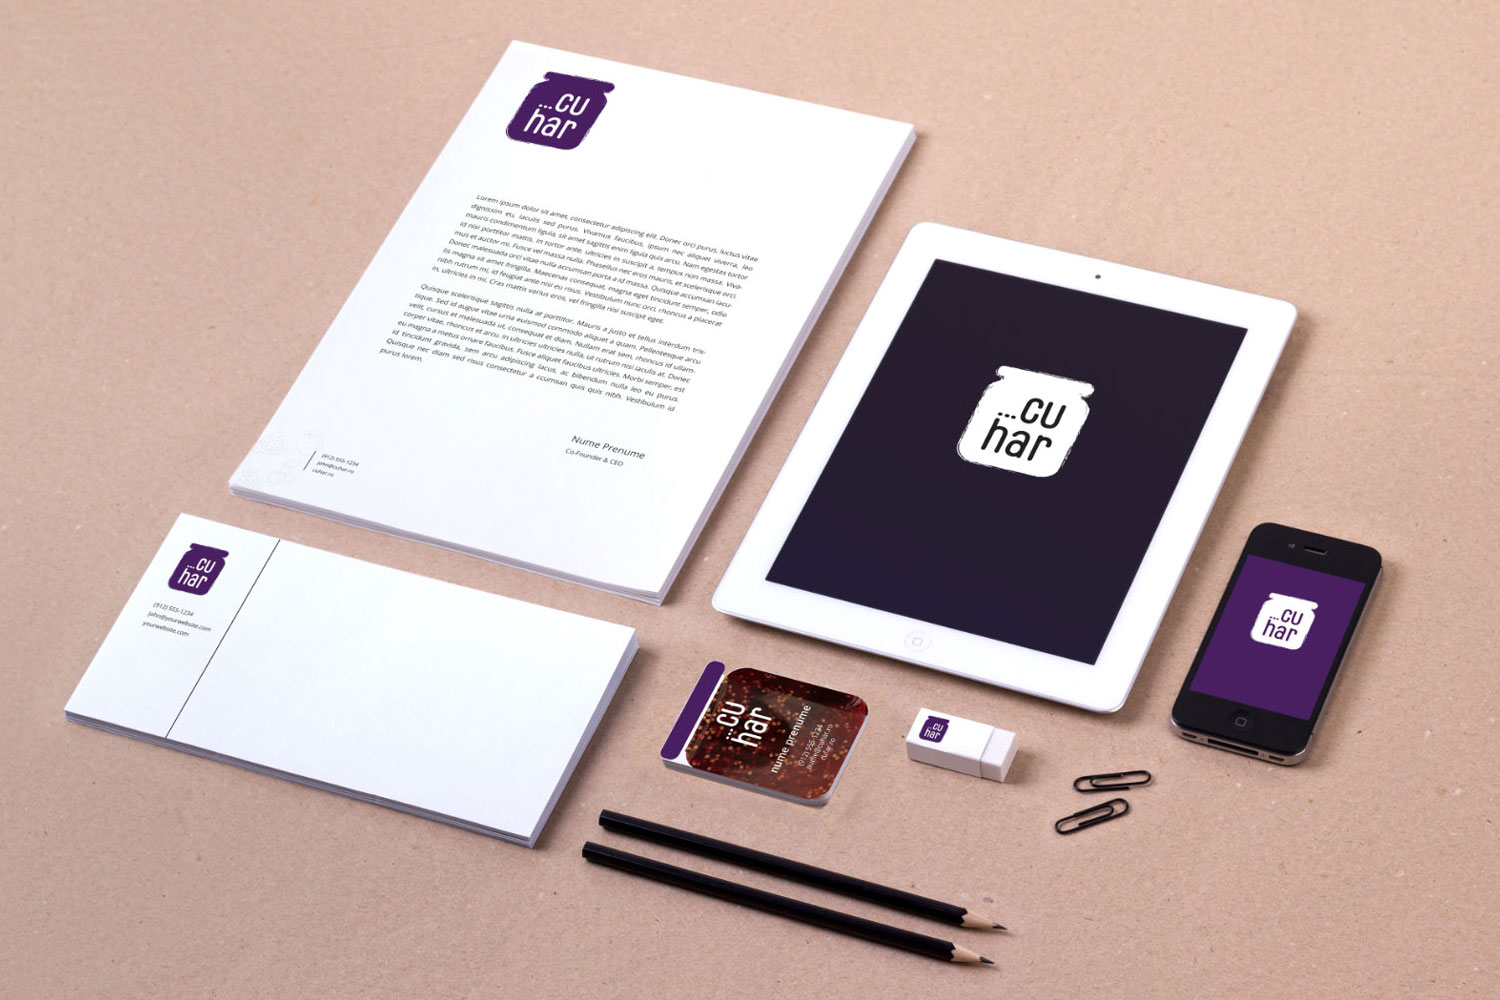 cuhar stationary branding by inoveo